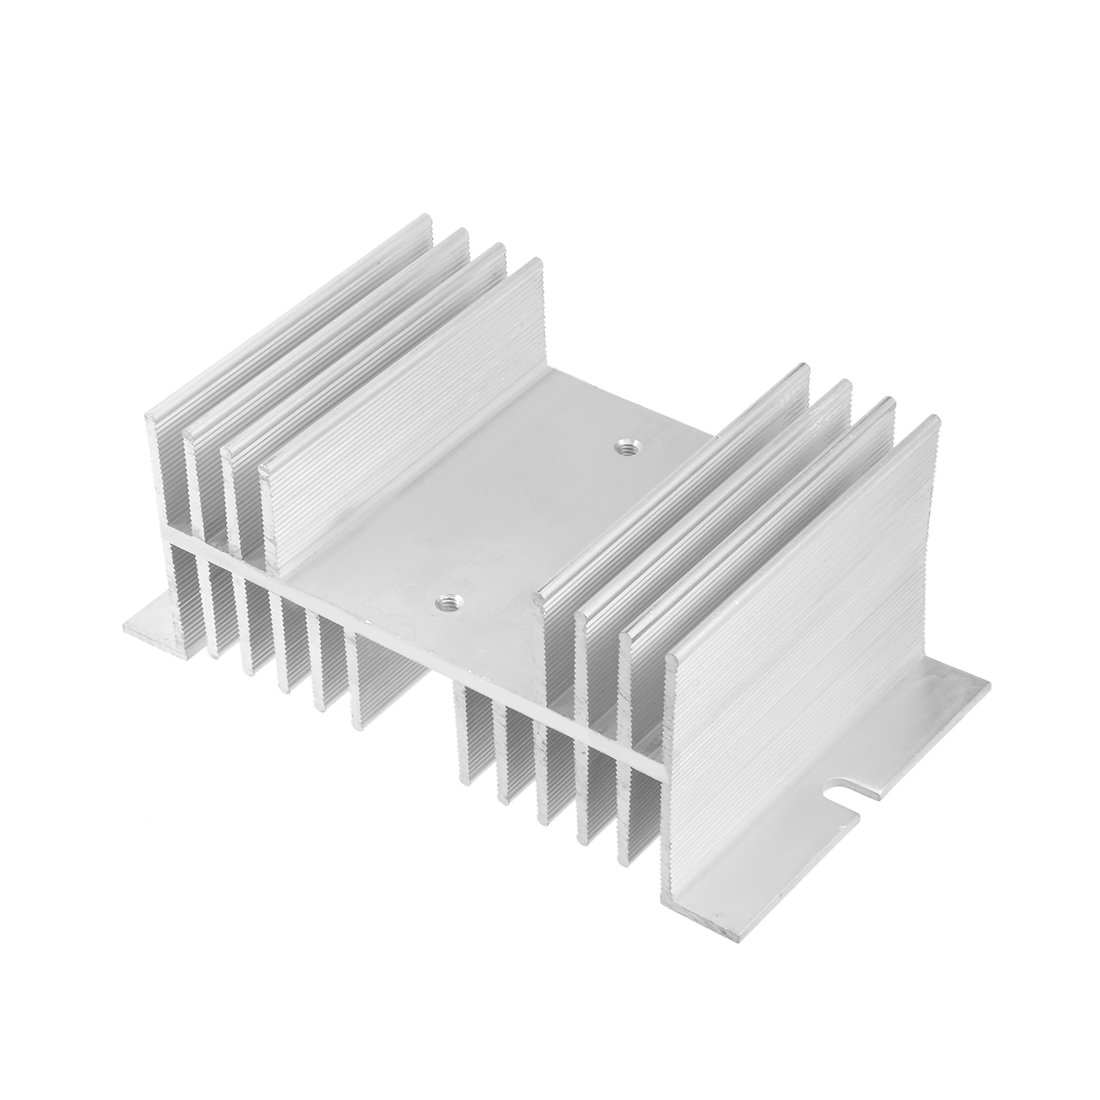 uxcell Aluminum Heat Sink SSR Dissipation for Single Phase Solid State Relay 10A-100A